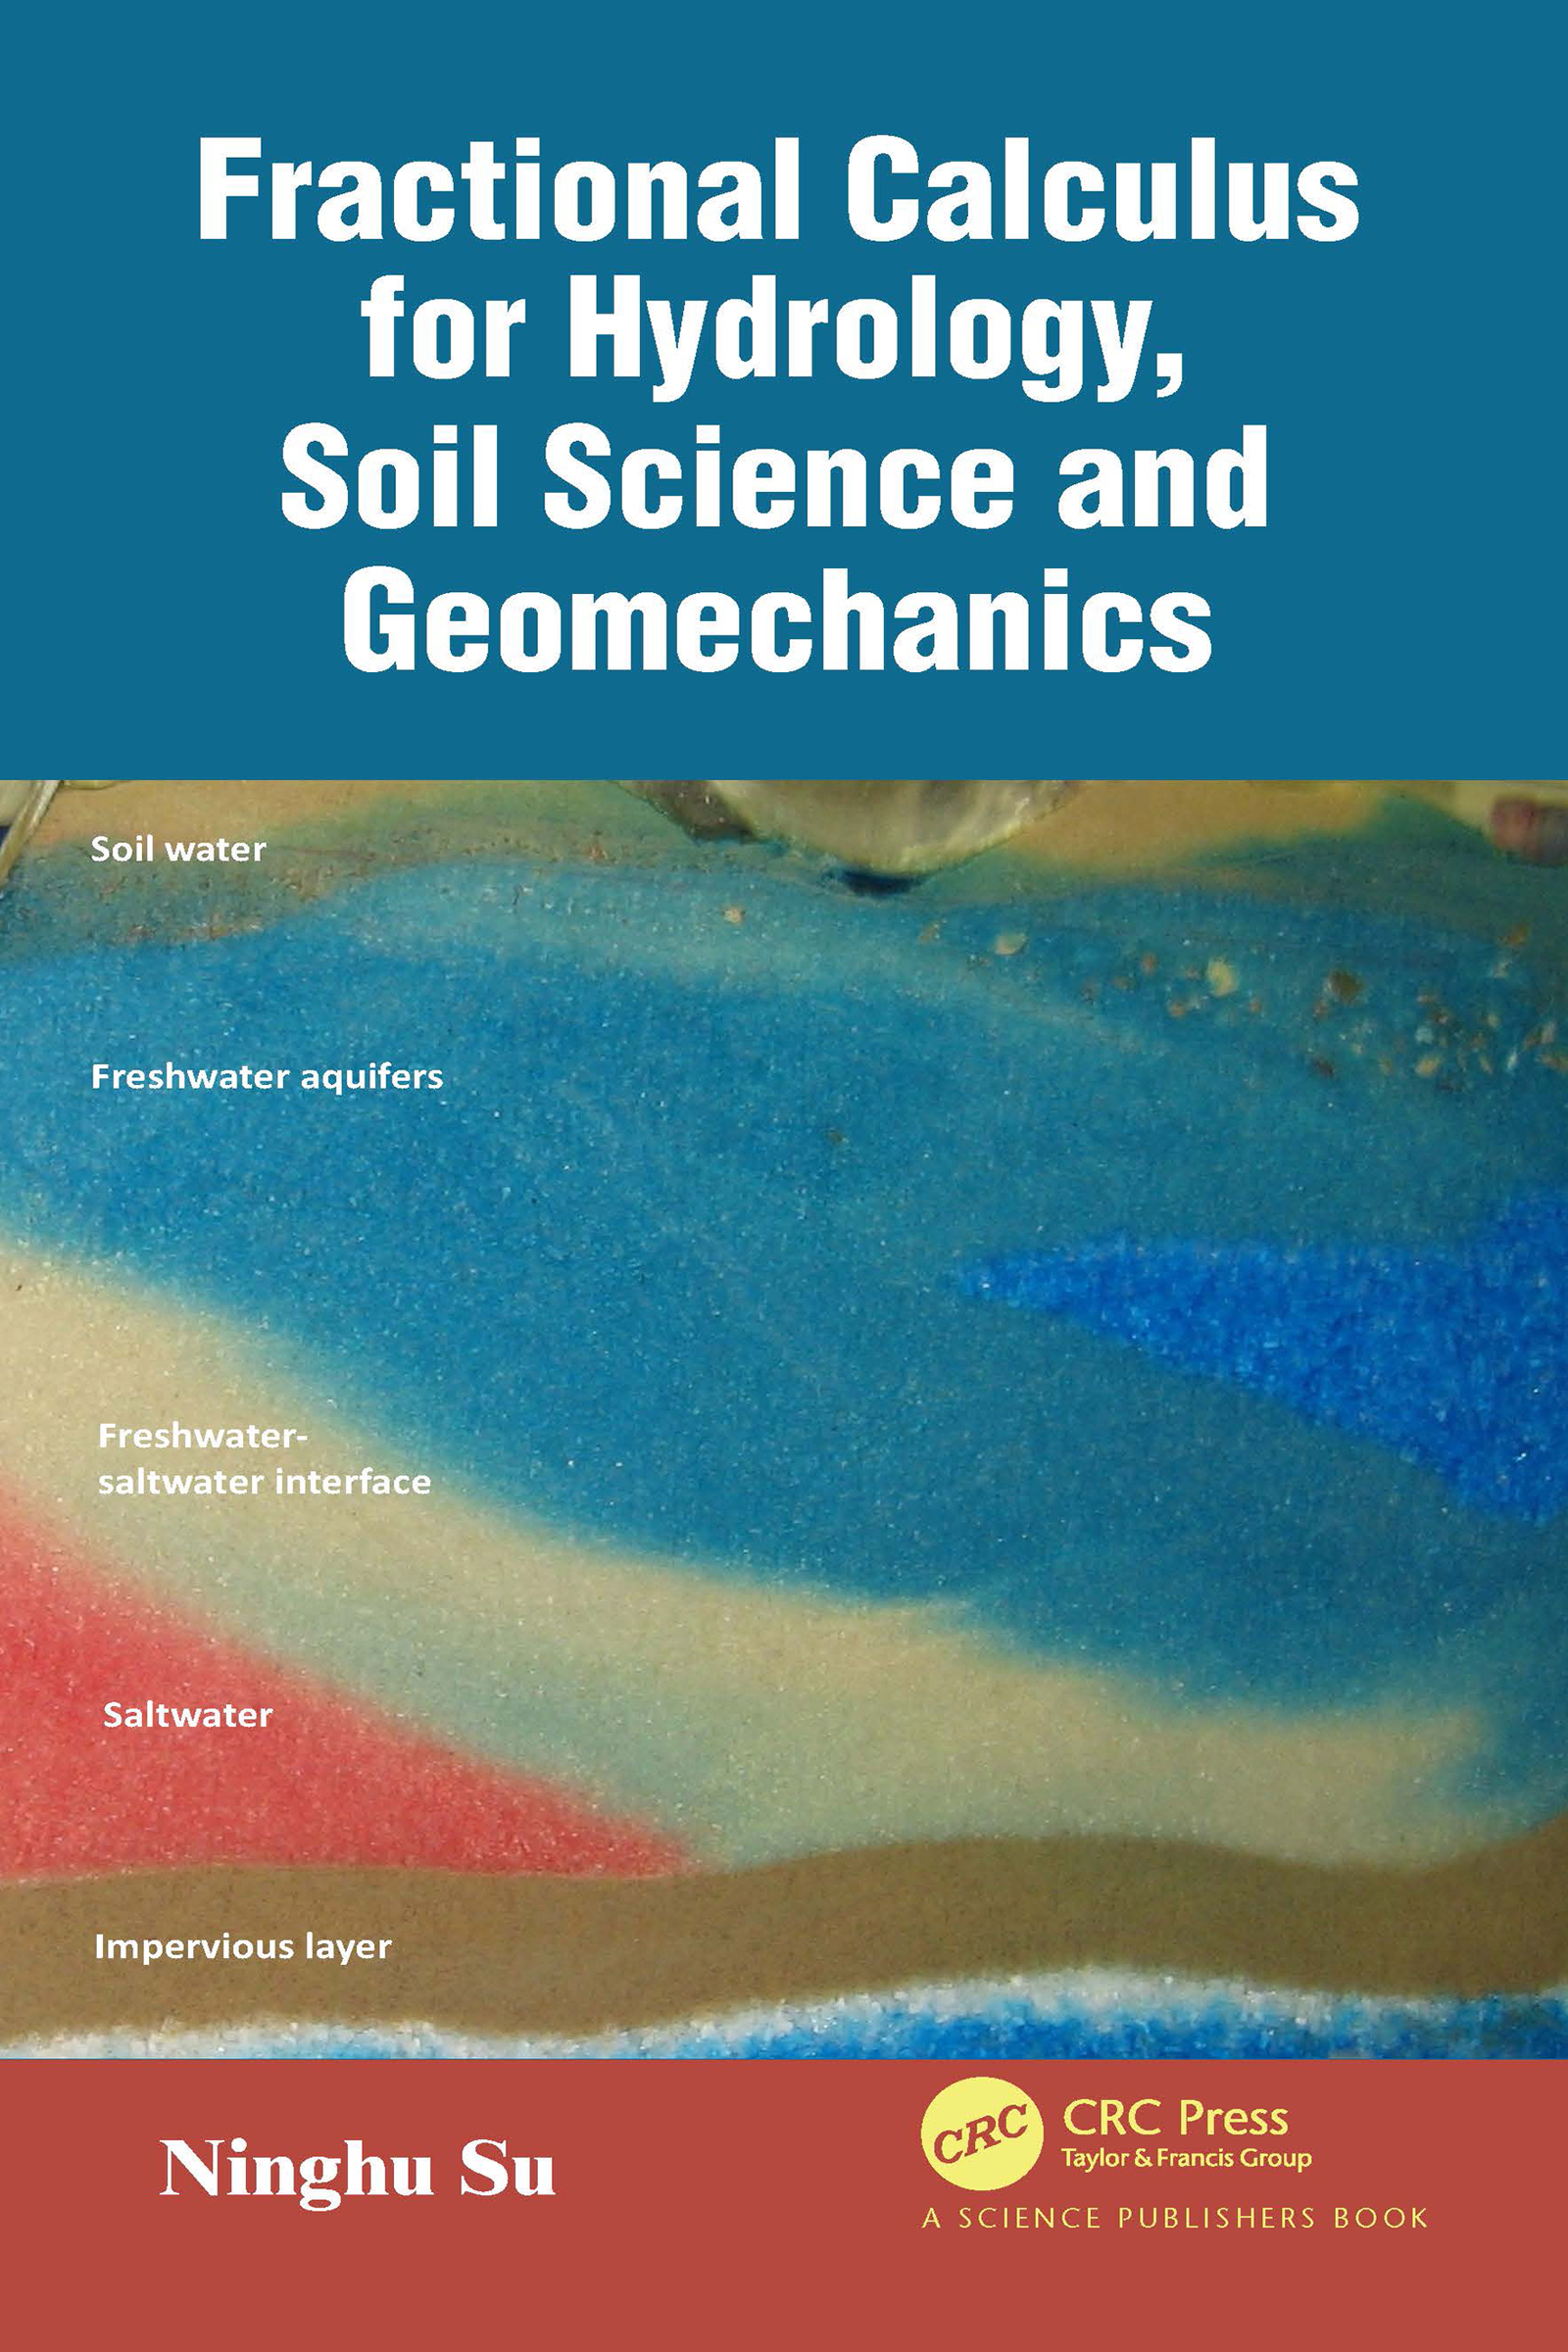 Fractional Partial Differential Equations for Groundwater Flow